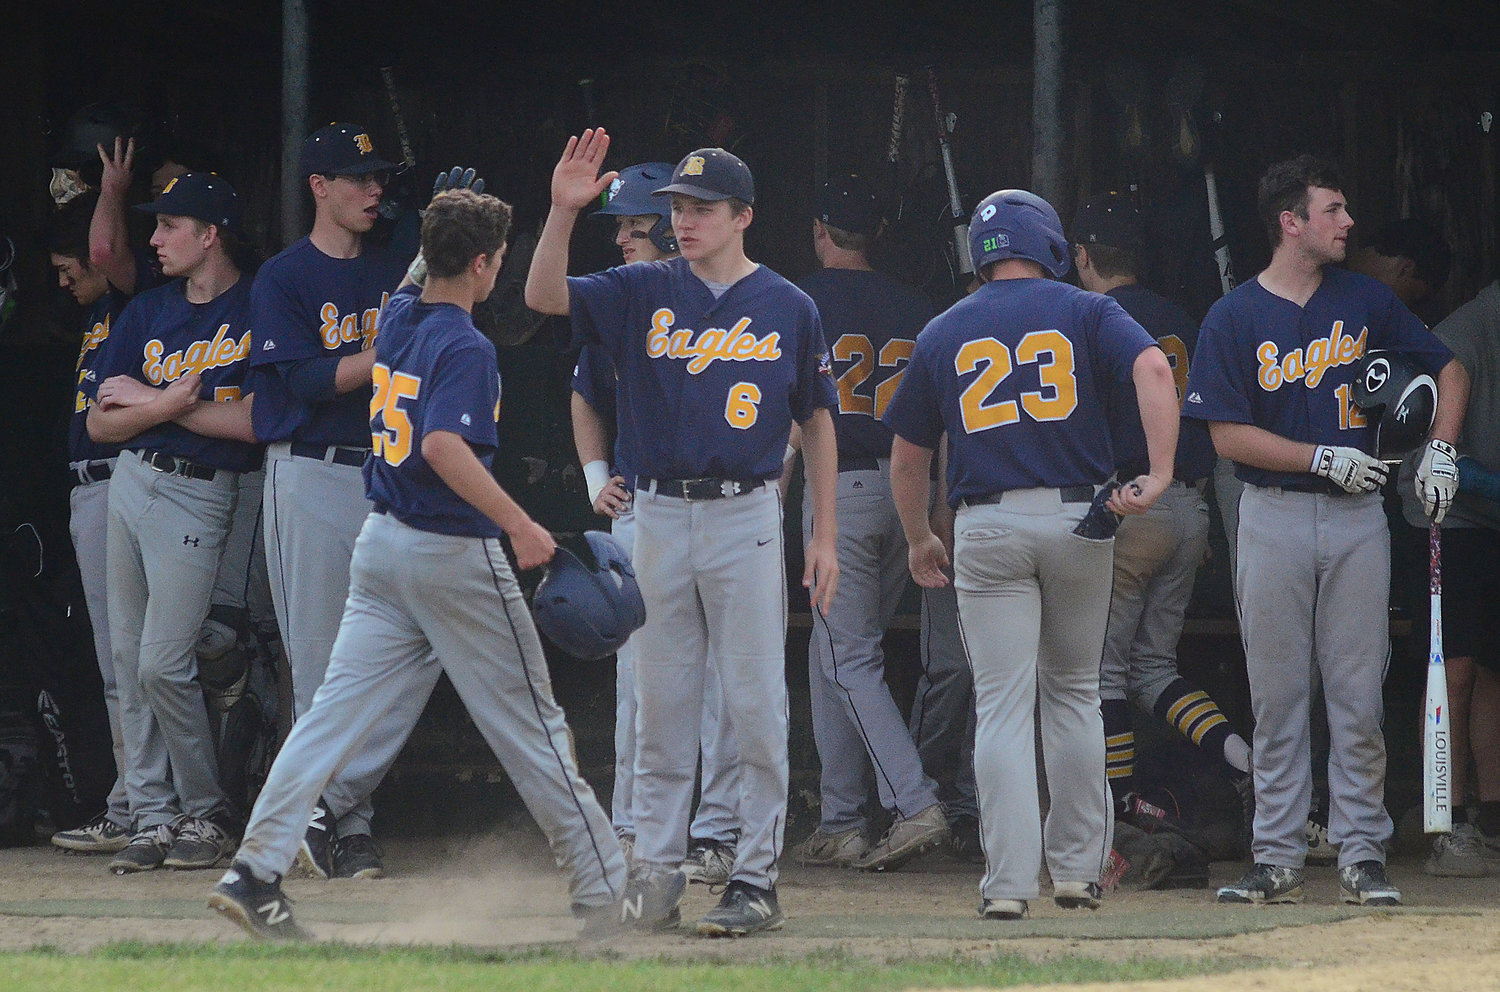 The Barrington High School baseball team defeated Prout in the semifinals and will play against Mount St. Charles in the finals. The first game is today, Monday, at 3:30 p.m. at McCoy Stadium.